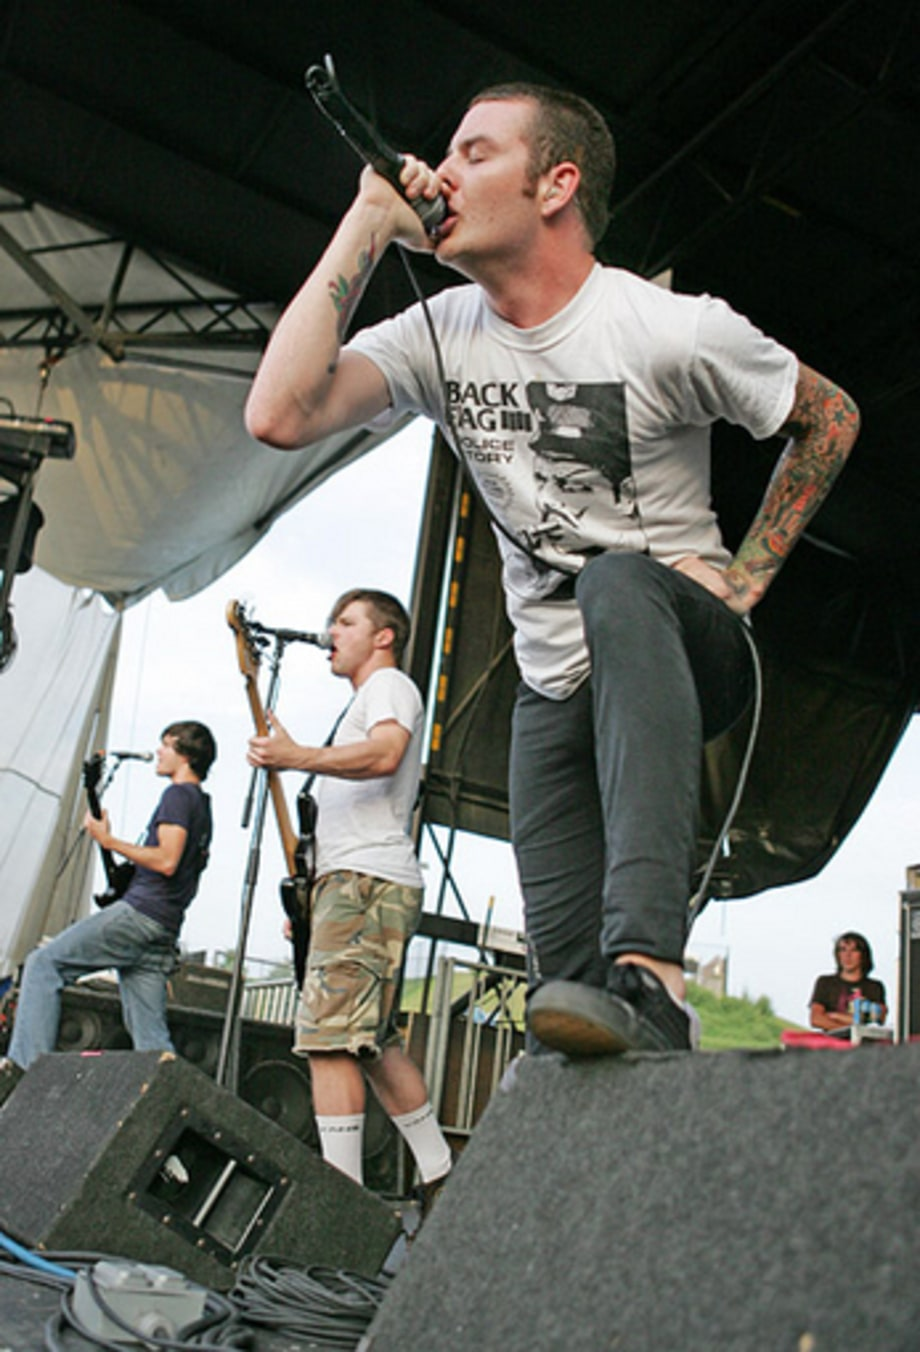 Senses Fail 2 - Warped Tour, Noblesville, IN 7/20/05 large